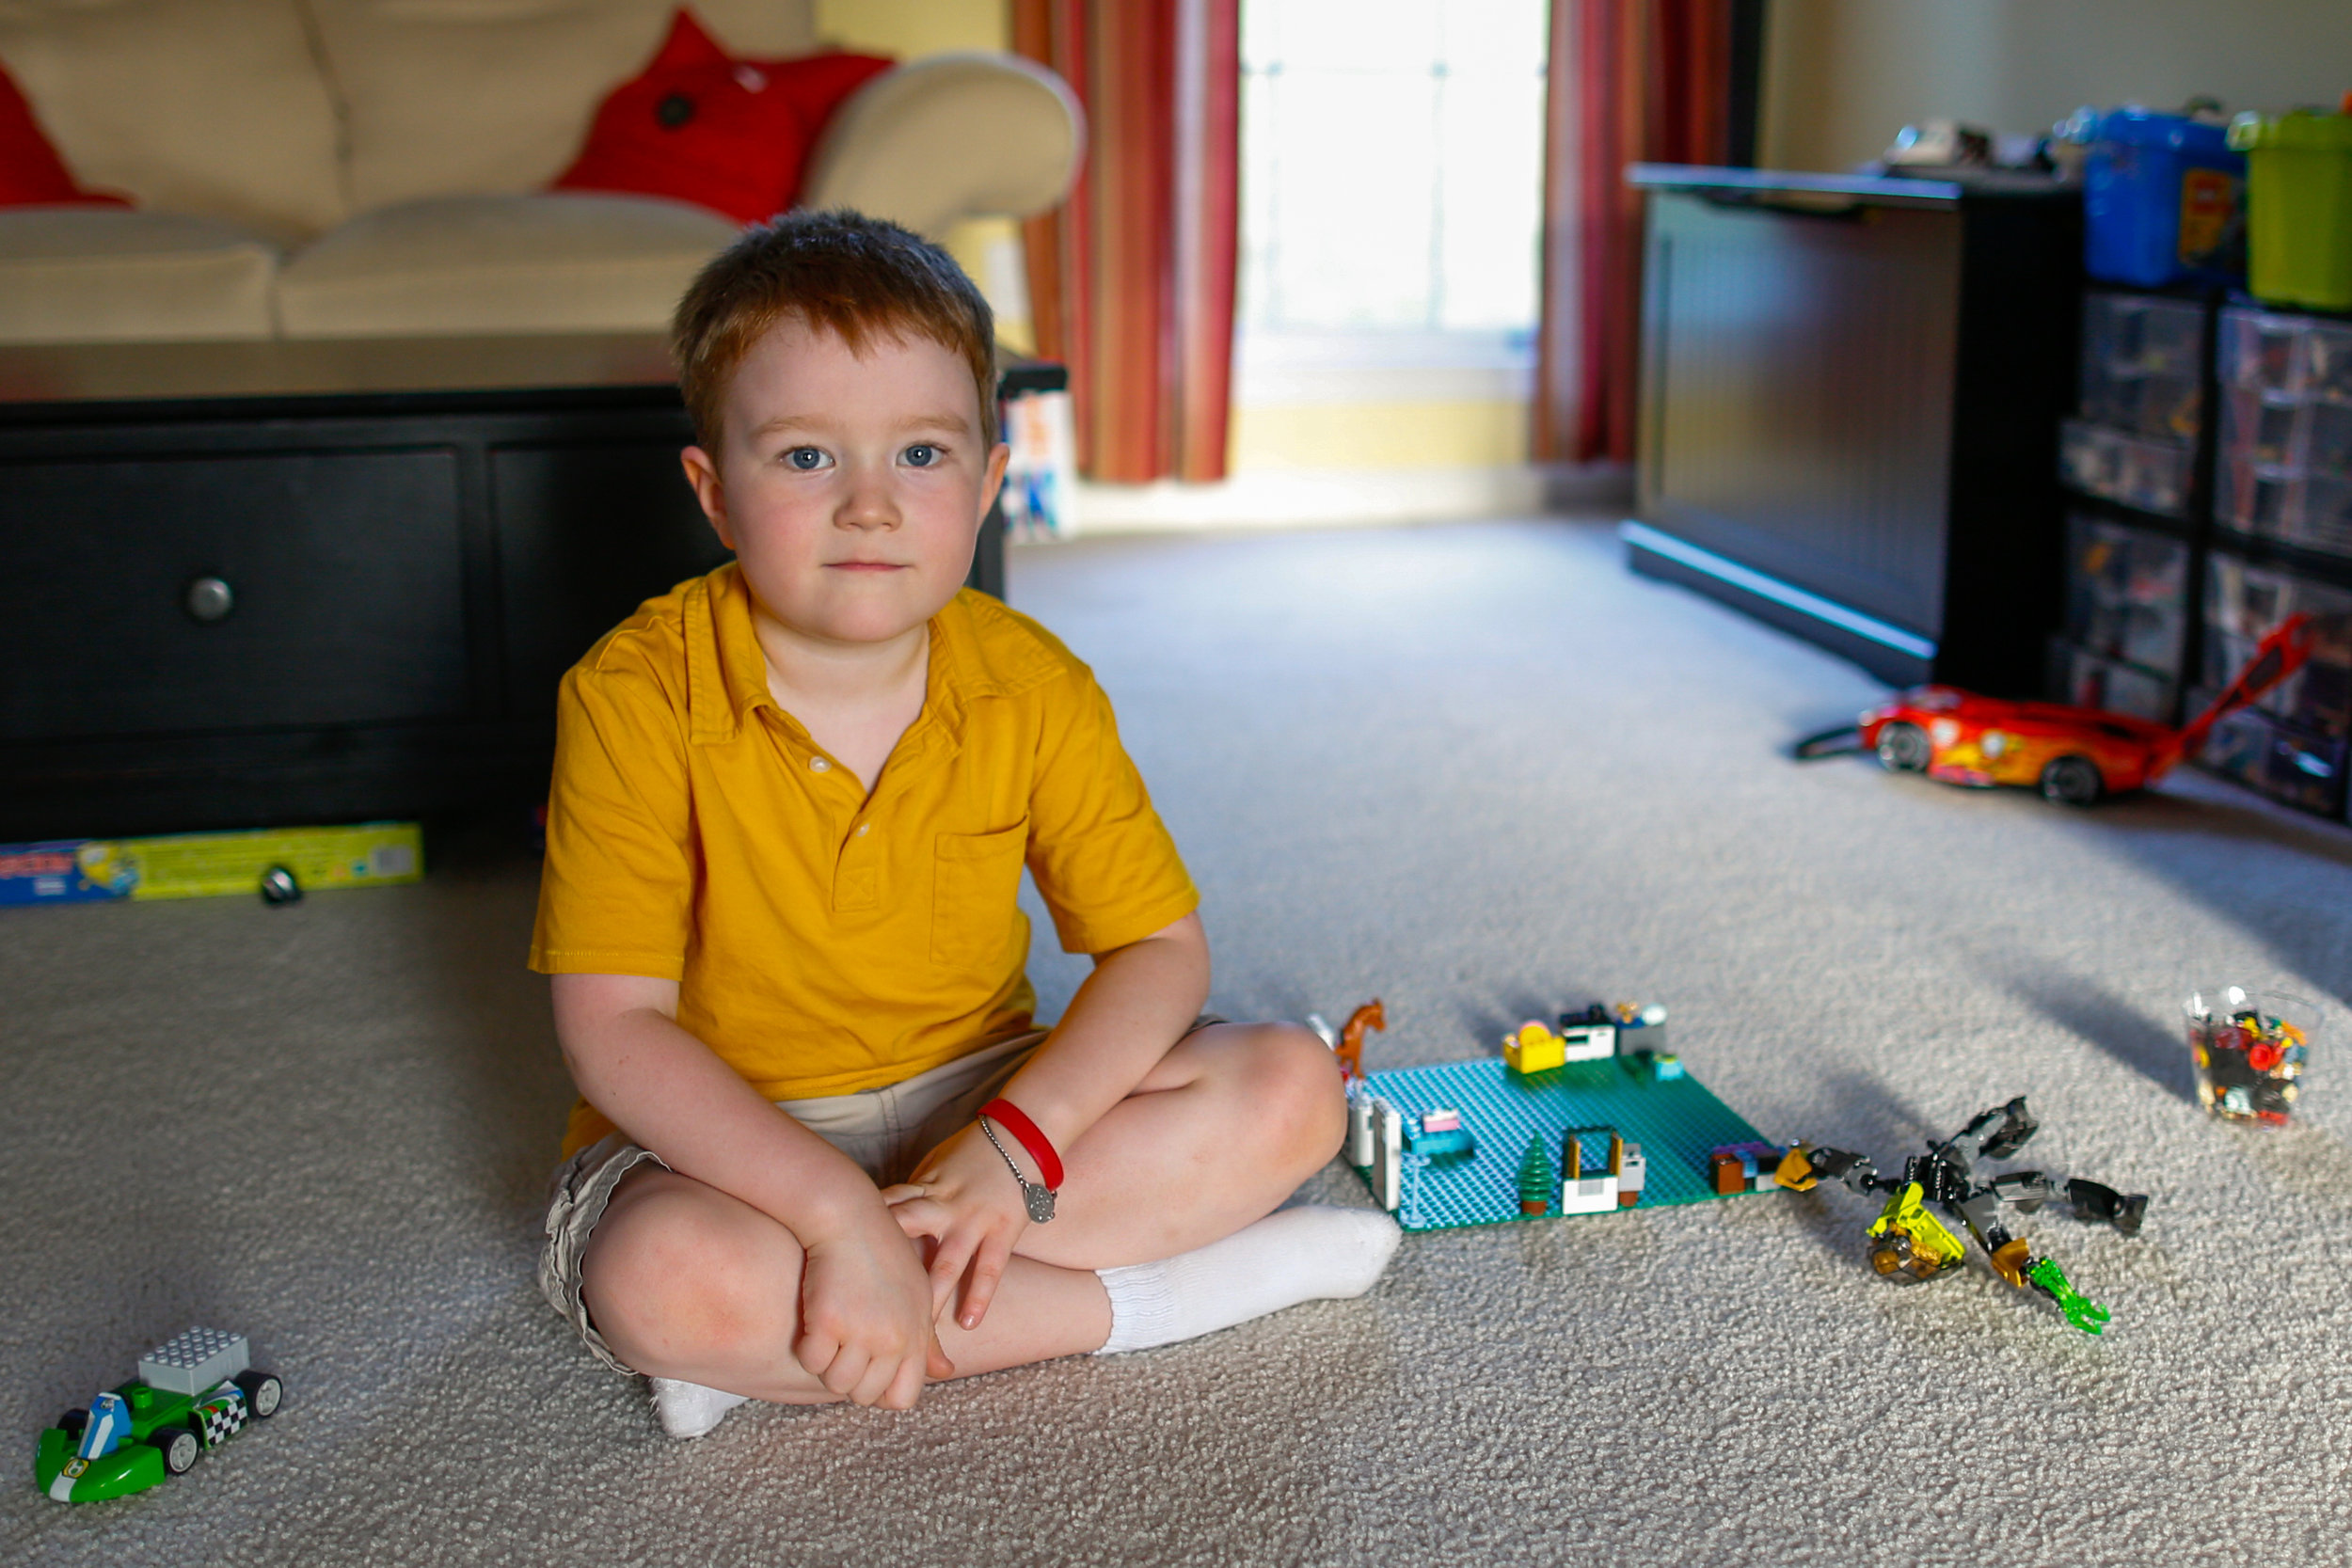 Evan Costik, 6, at his family's home in Livonia, N.Y.